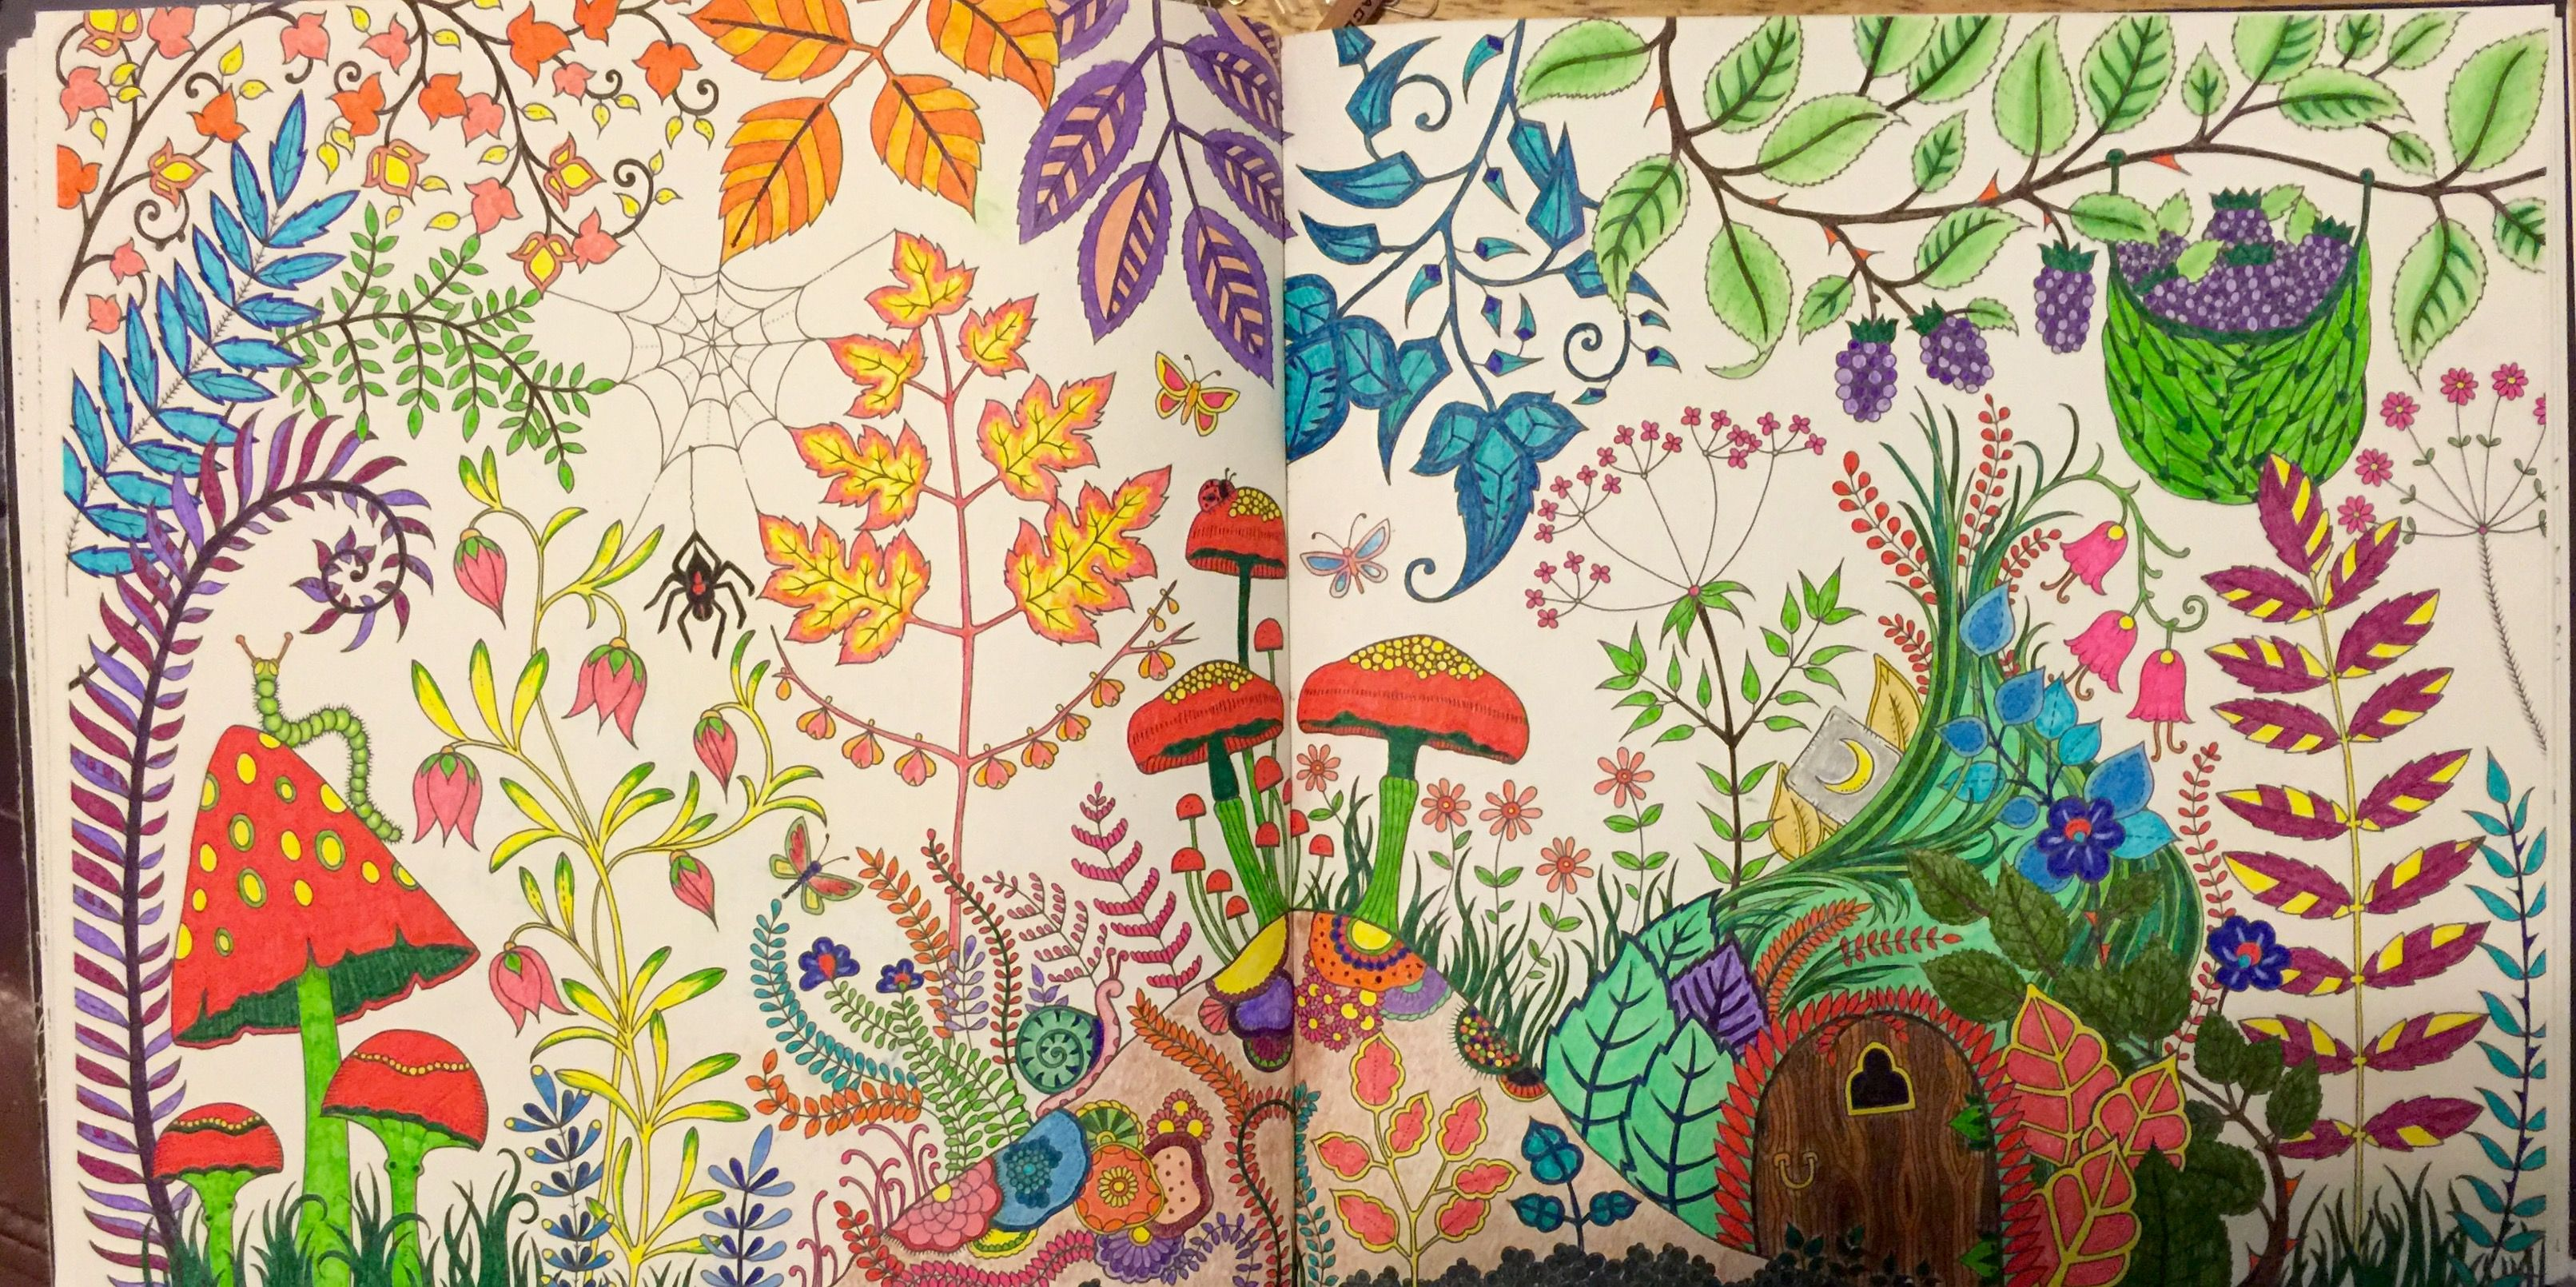 Mushrooms Grass Cabin Enchanted Forest Coloring Book